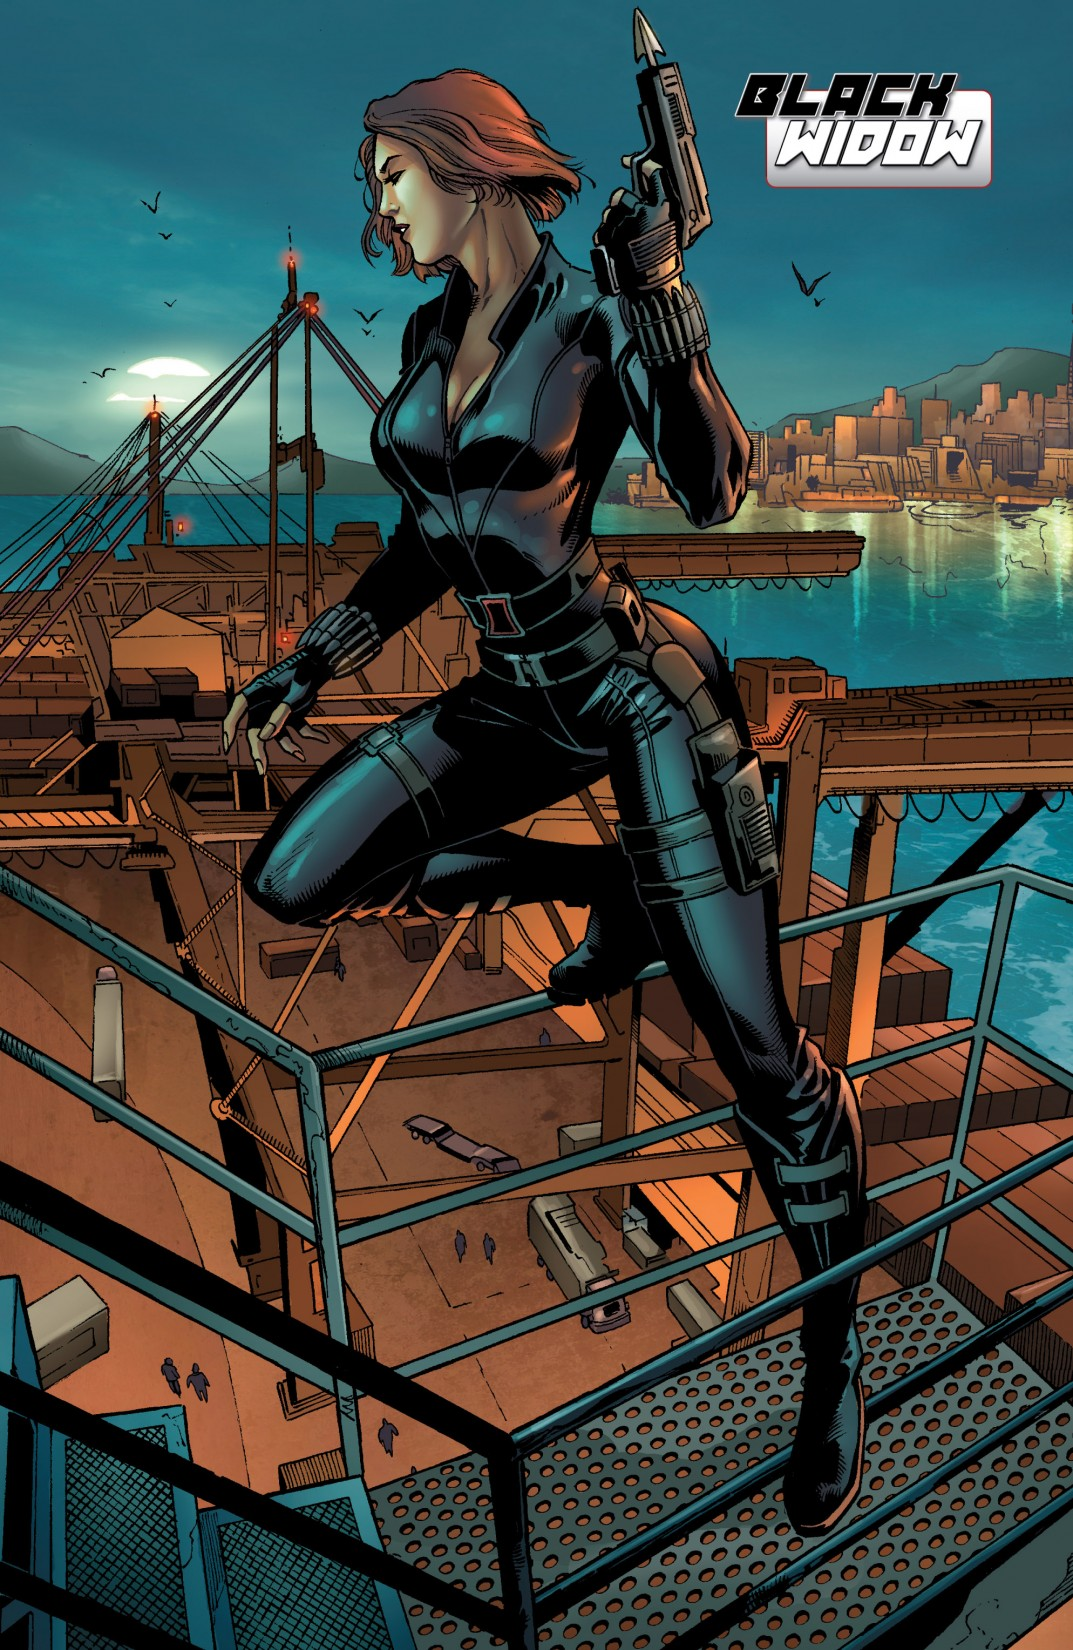 Marvel black widow - photo#45